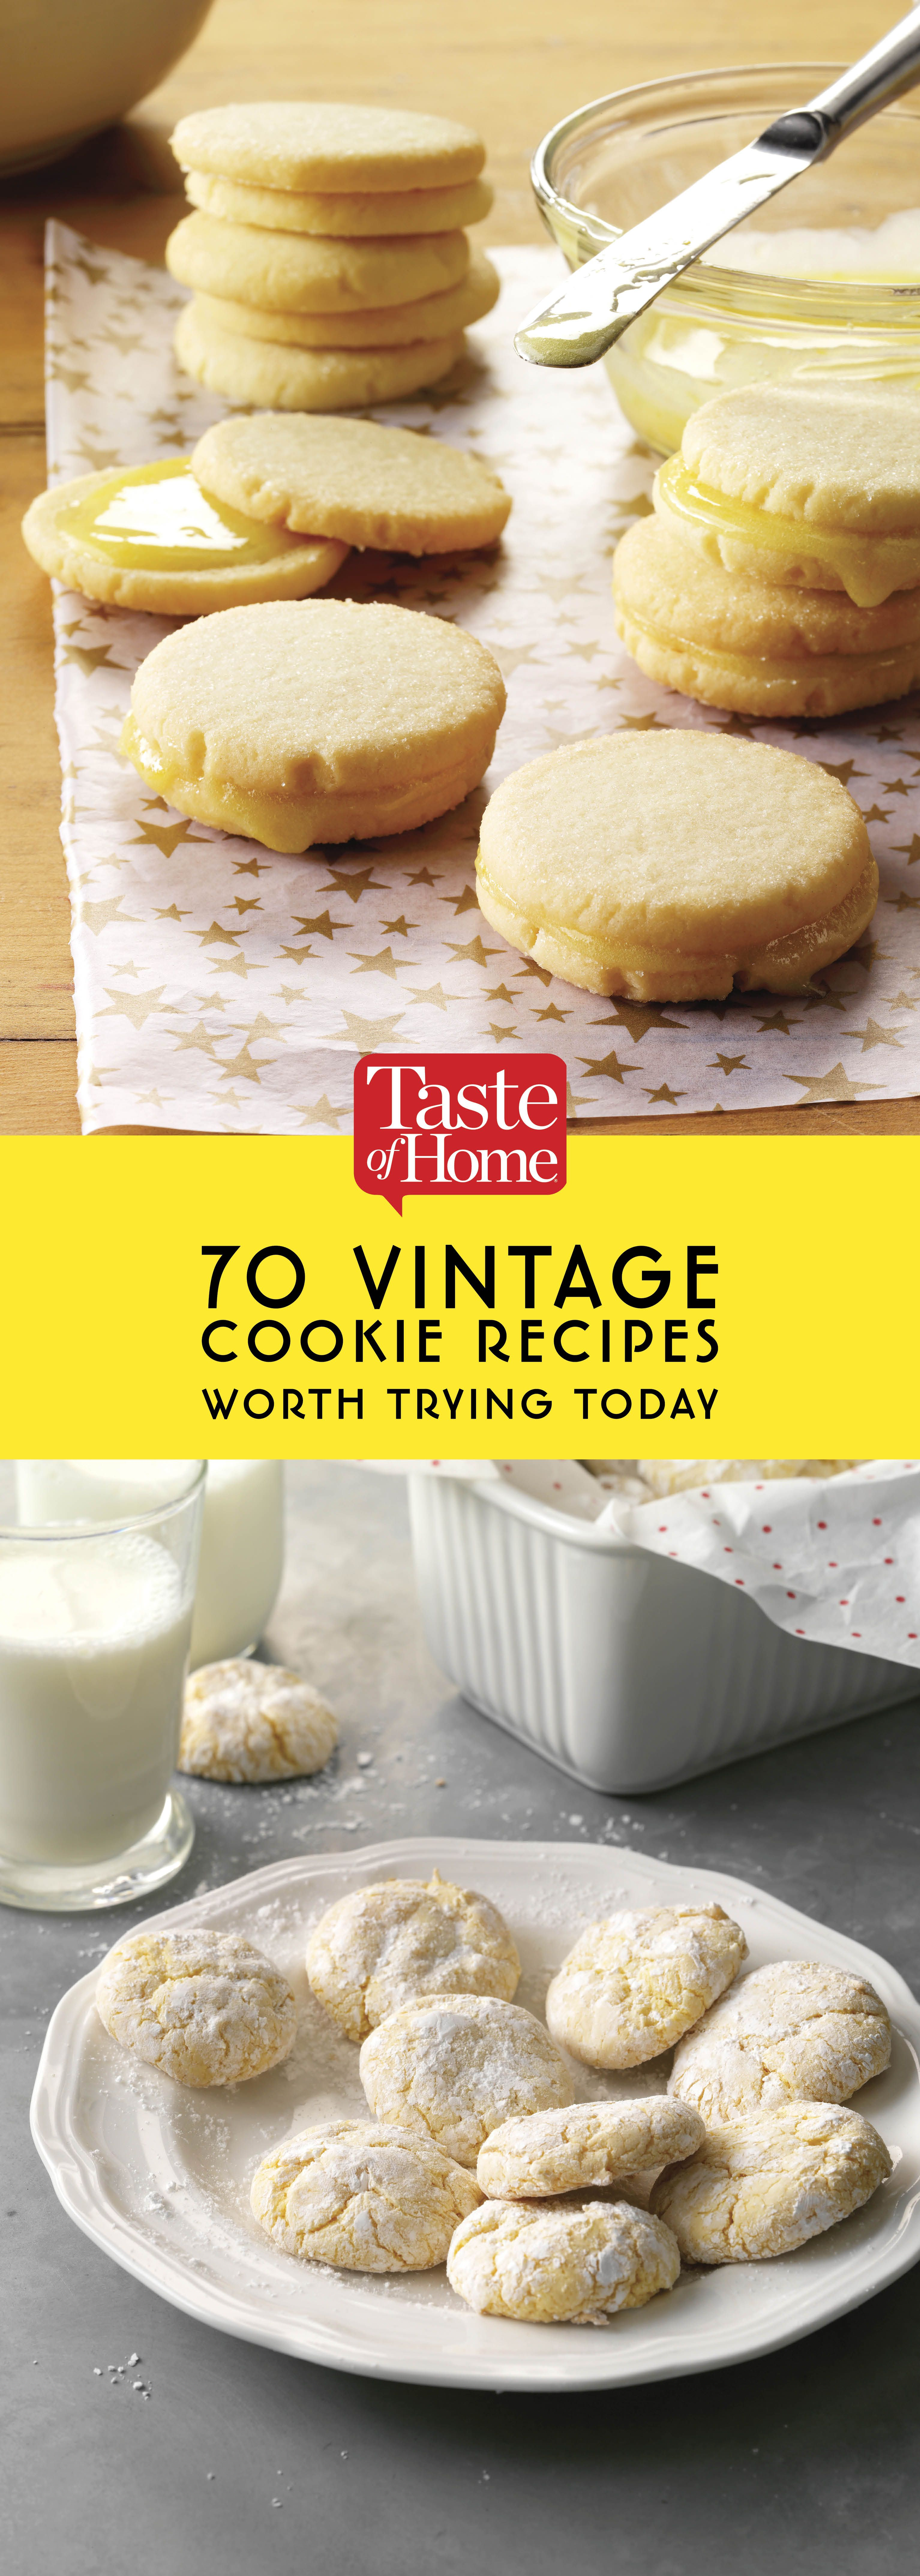 80 Vintage Cookie Recipes Definitely Worth Trying Today With